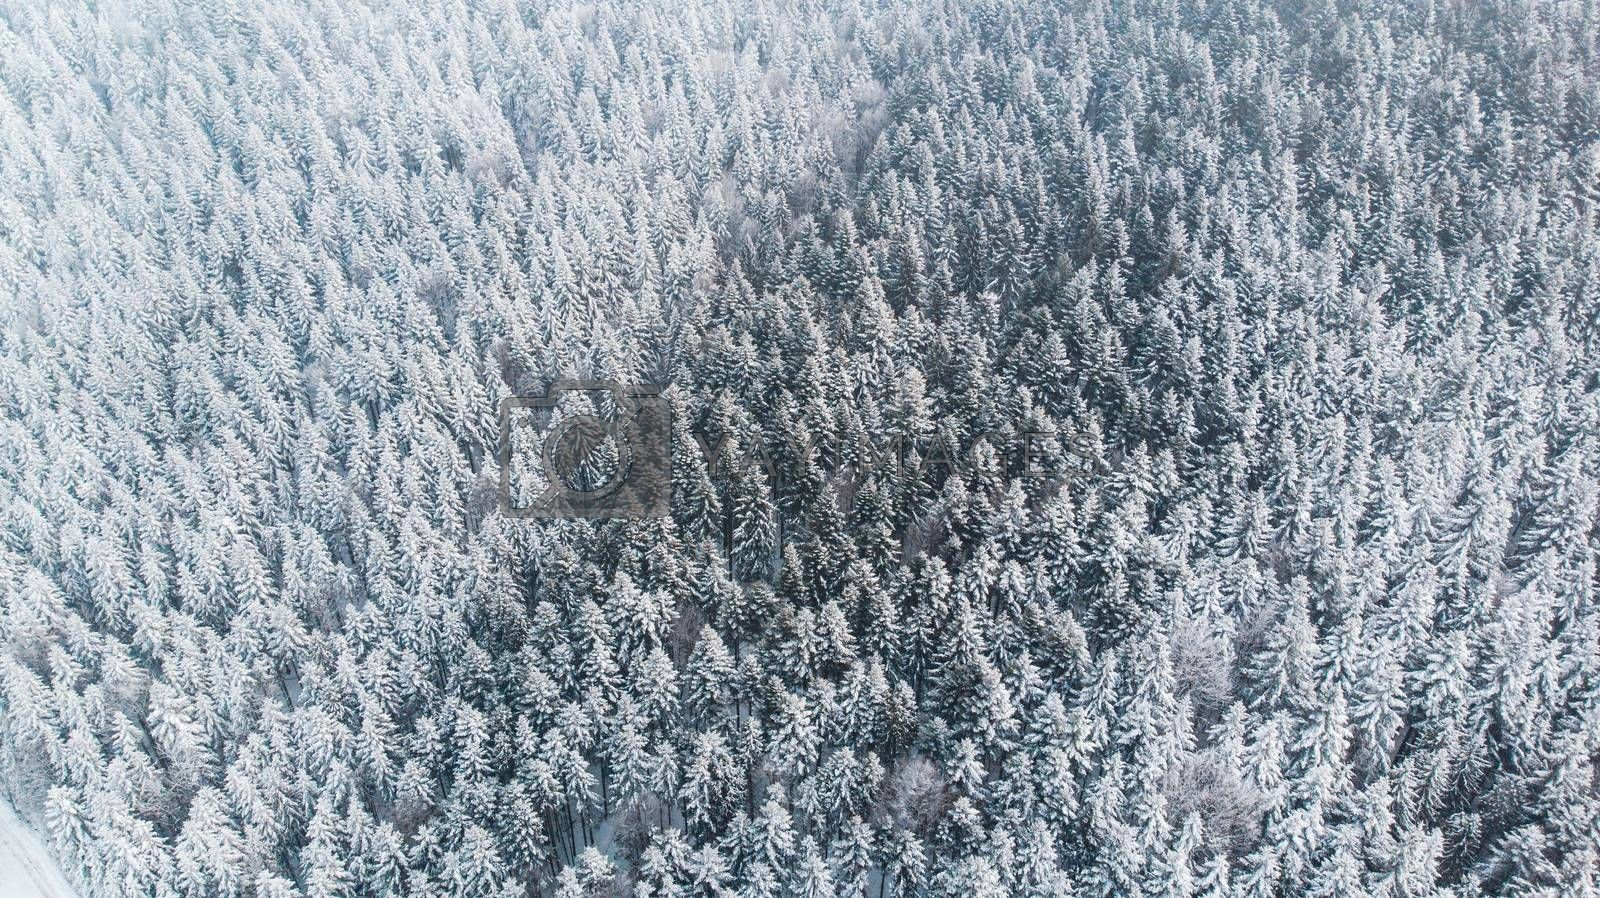 Abstract Winter Wonderland. Pine Trees Snow Covered. Aerial Dron by merc67